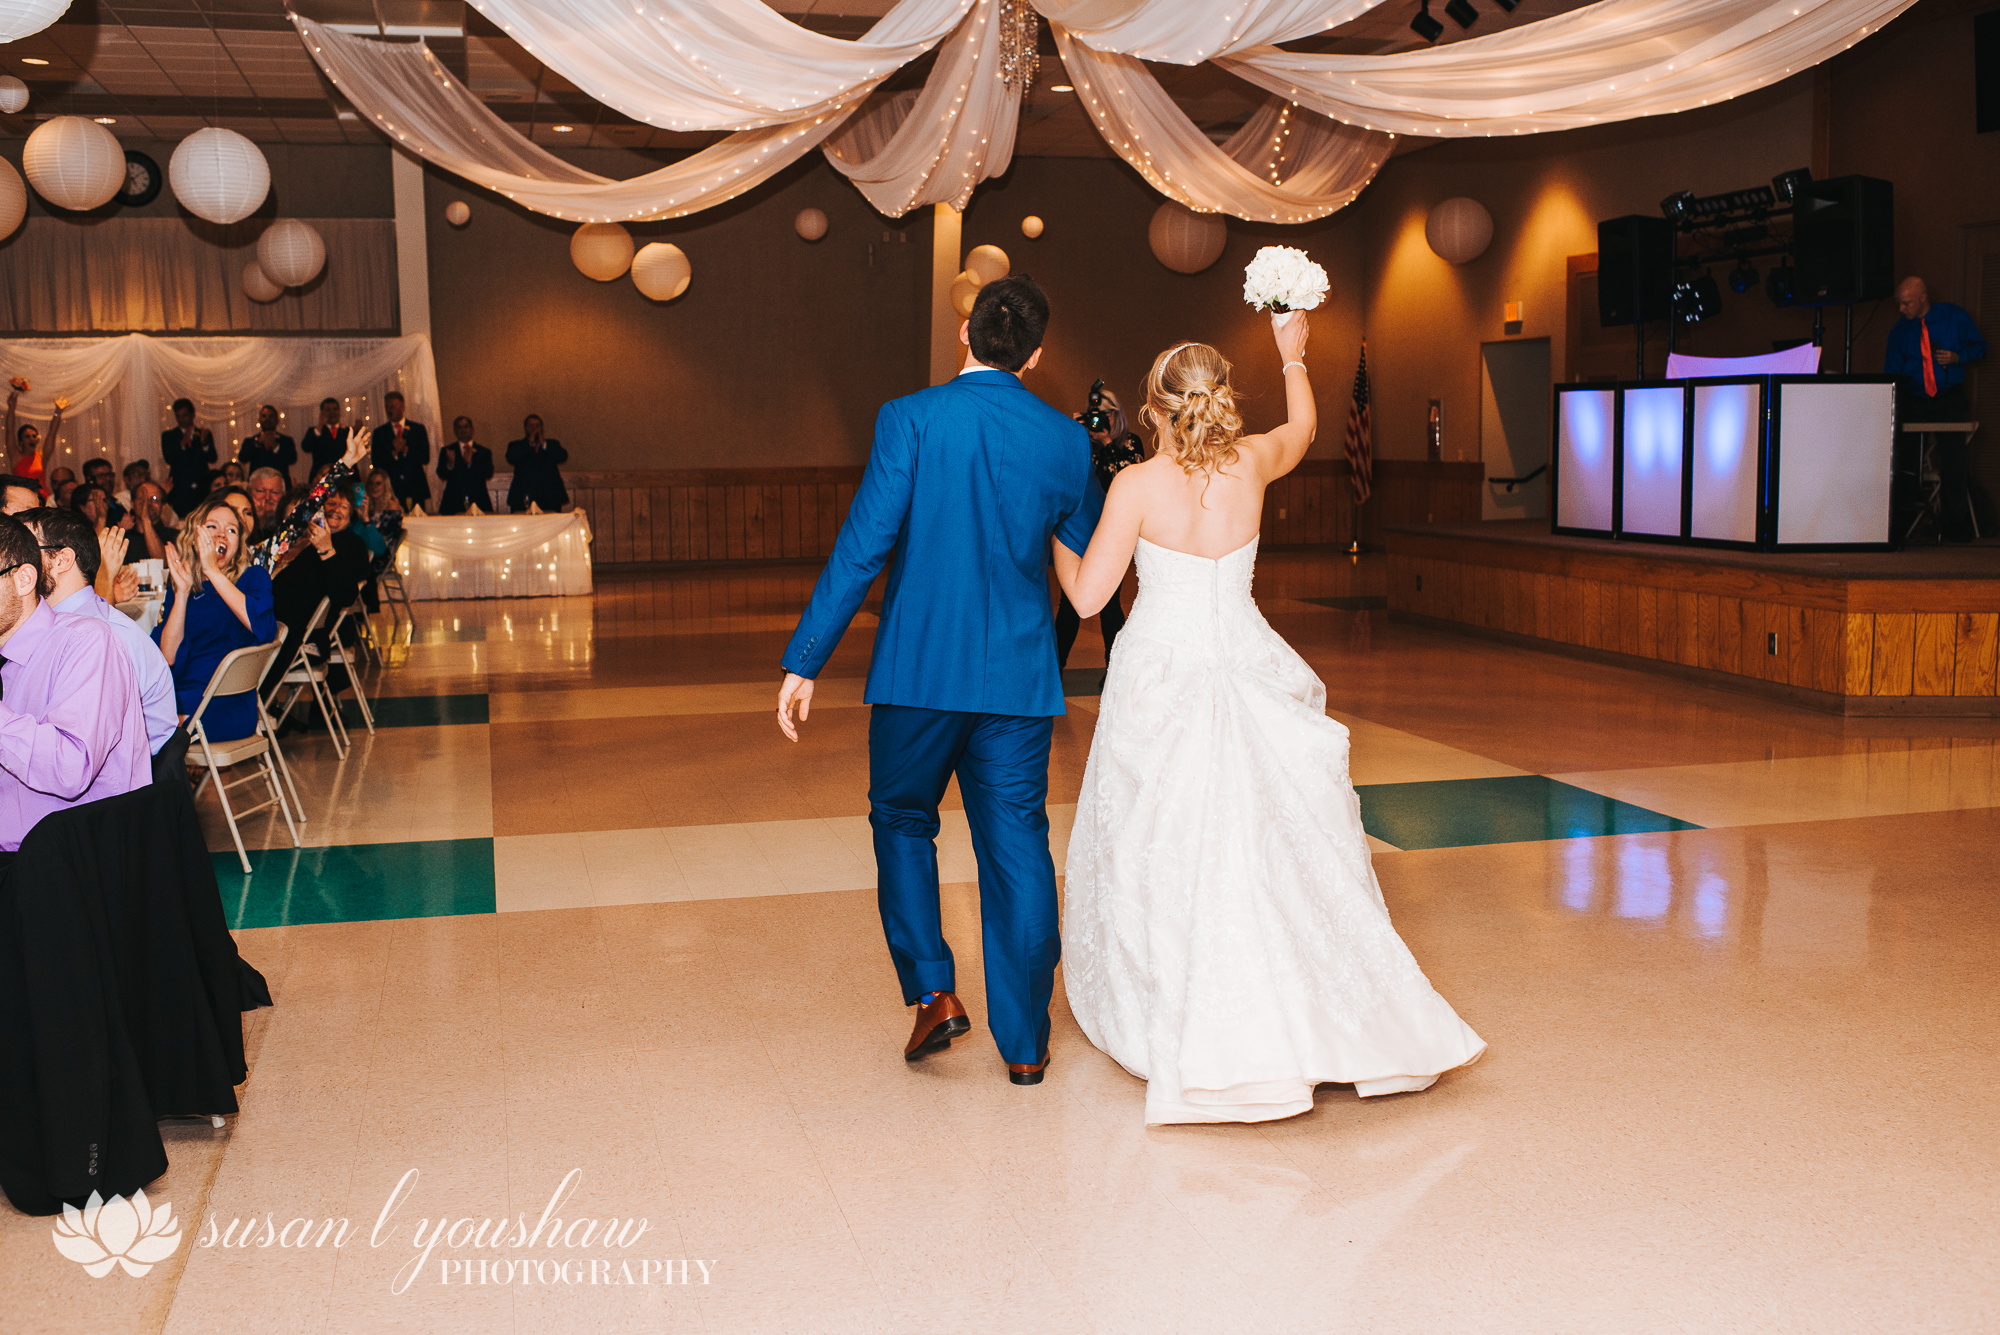 BLOG Kylie and corey Bennet 10-13-2018 SLY Photography LLC-126.jpg